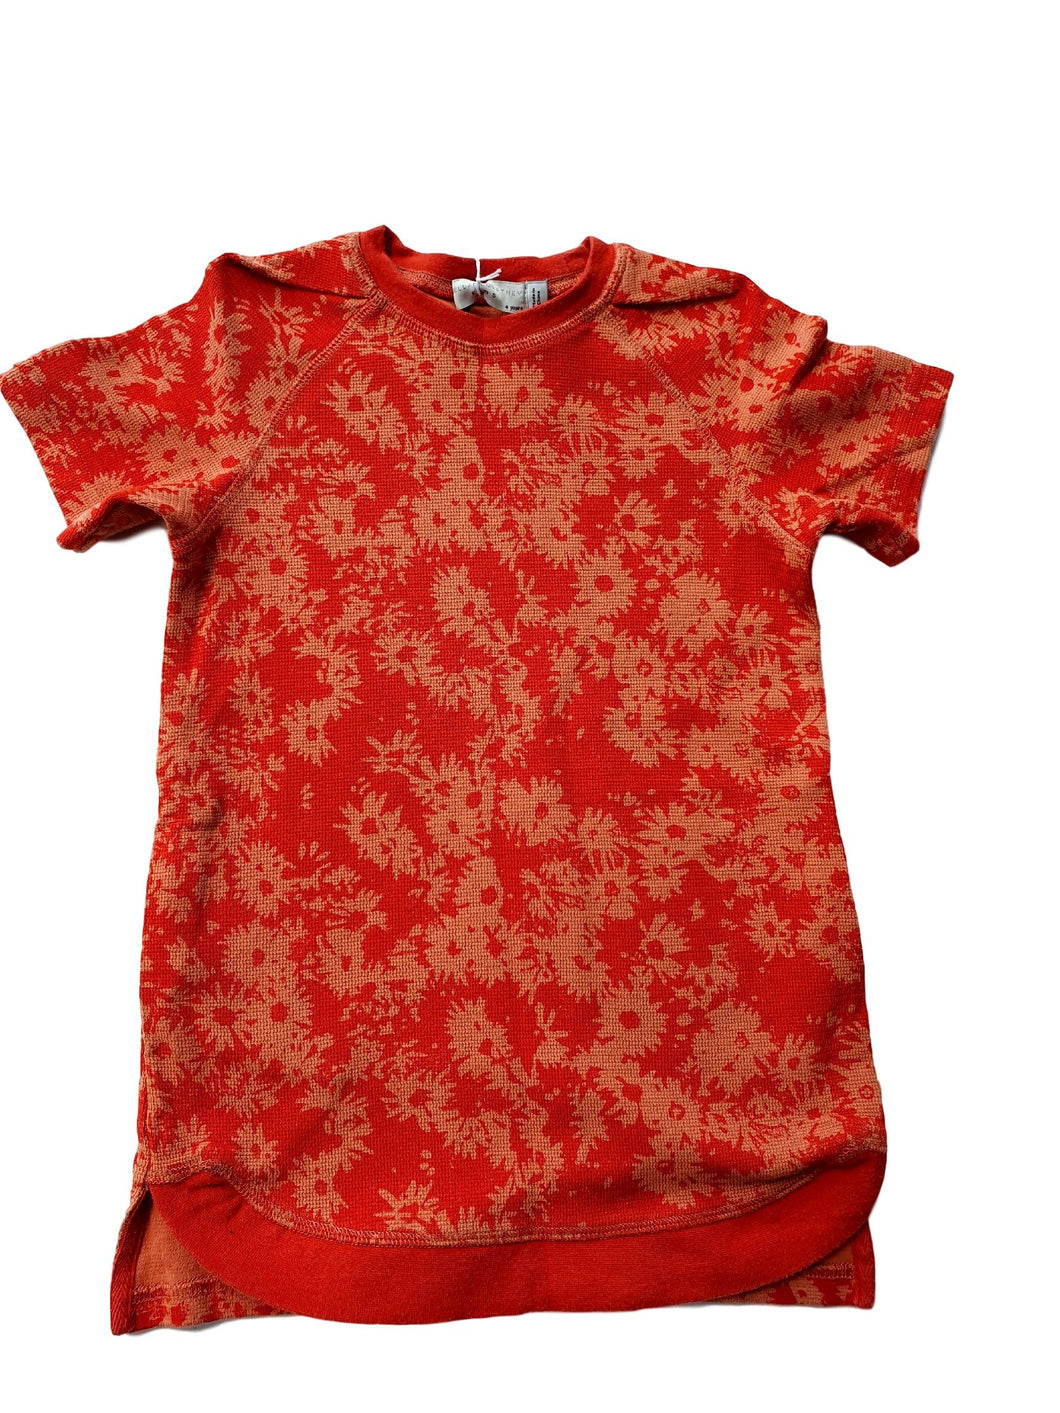 STELLA MC CARTNEY dress 4yo